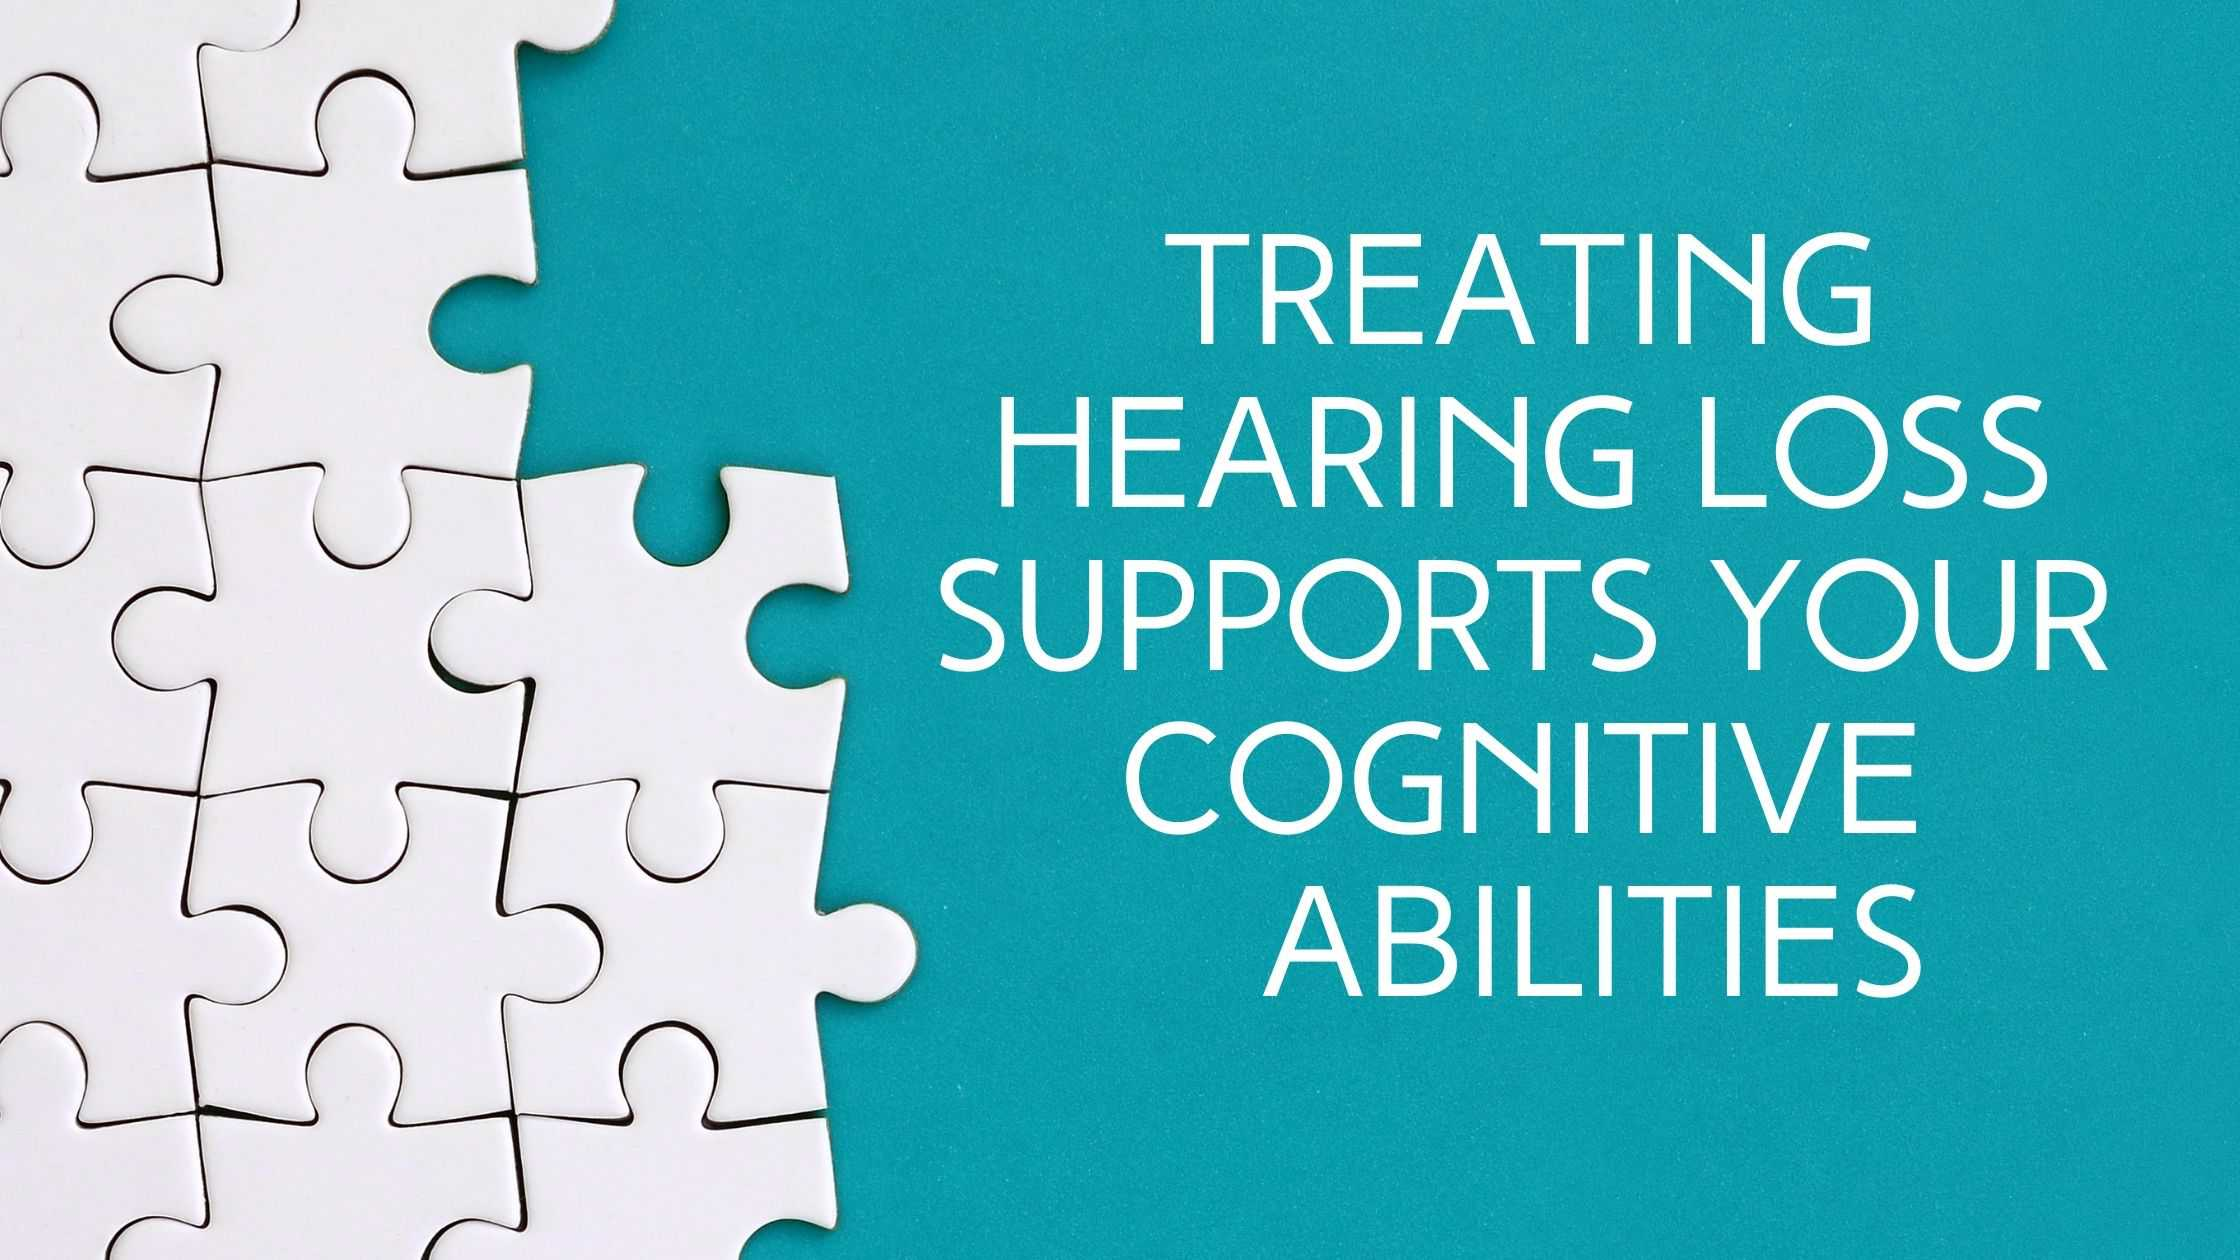 Treating Hearing Loss Supports Your Cognitive Abilities